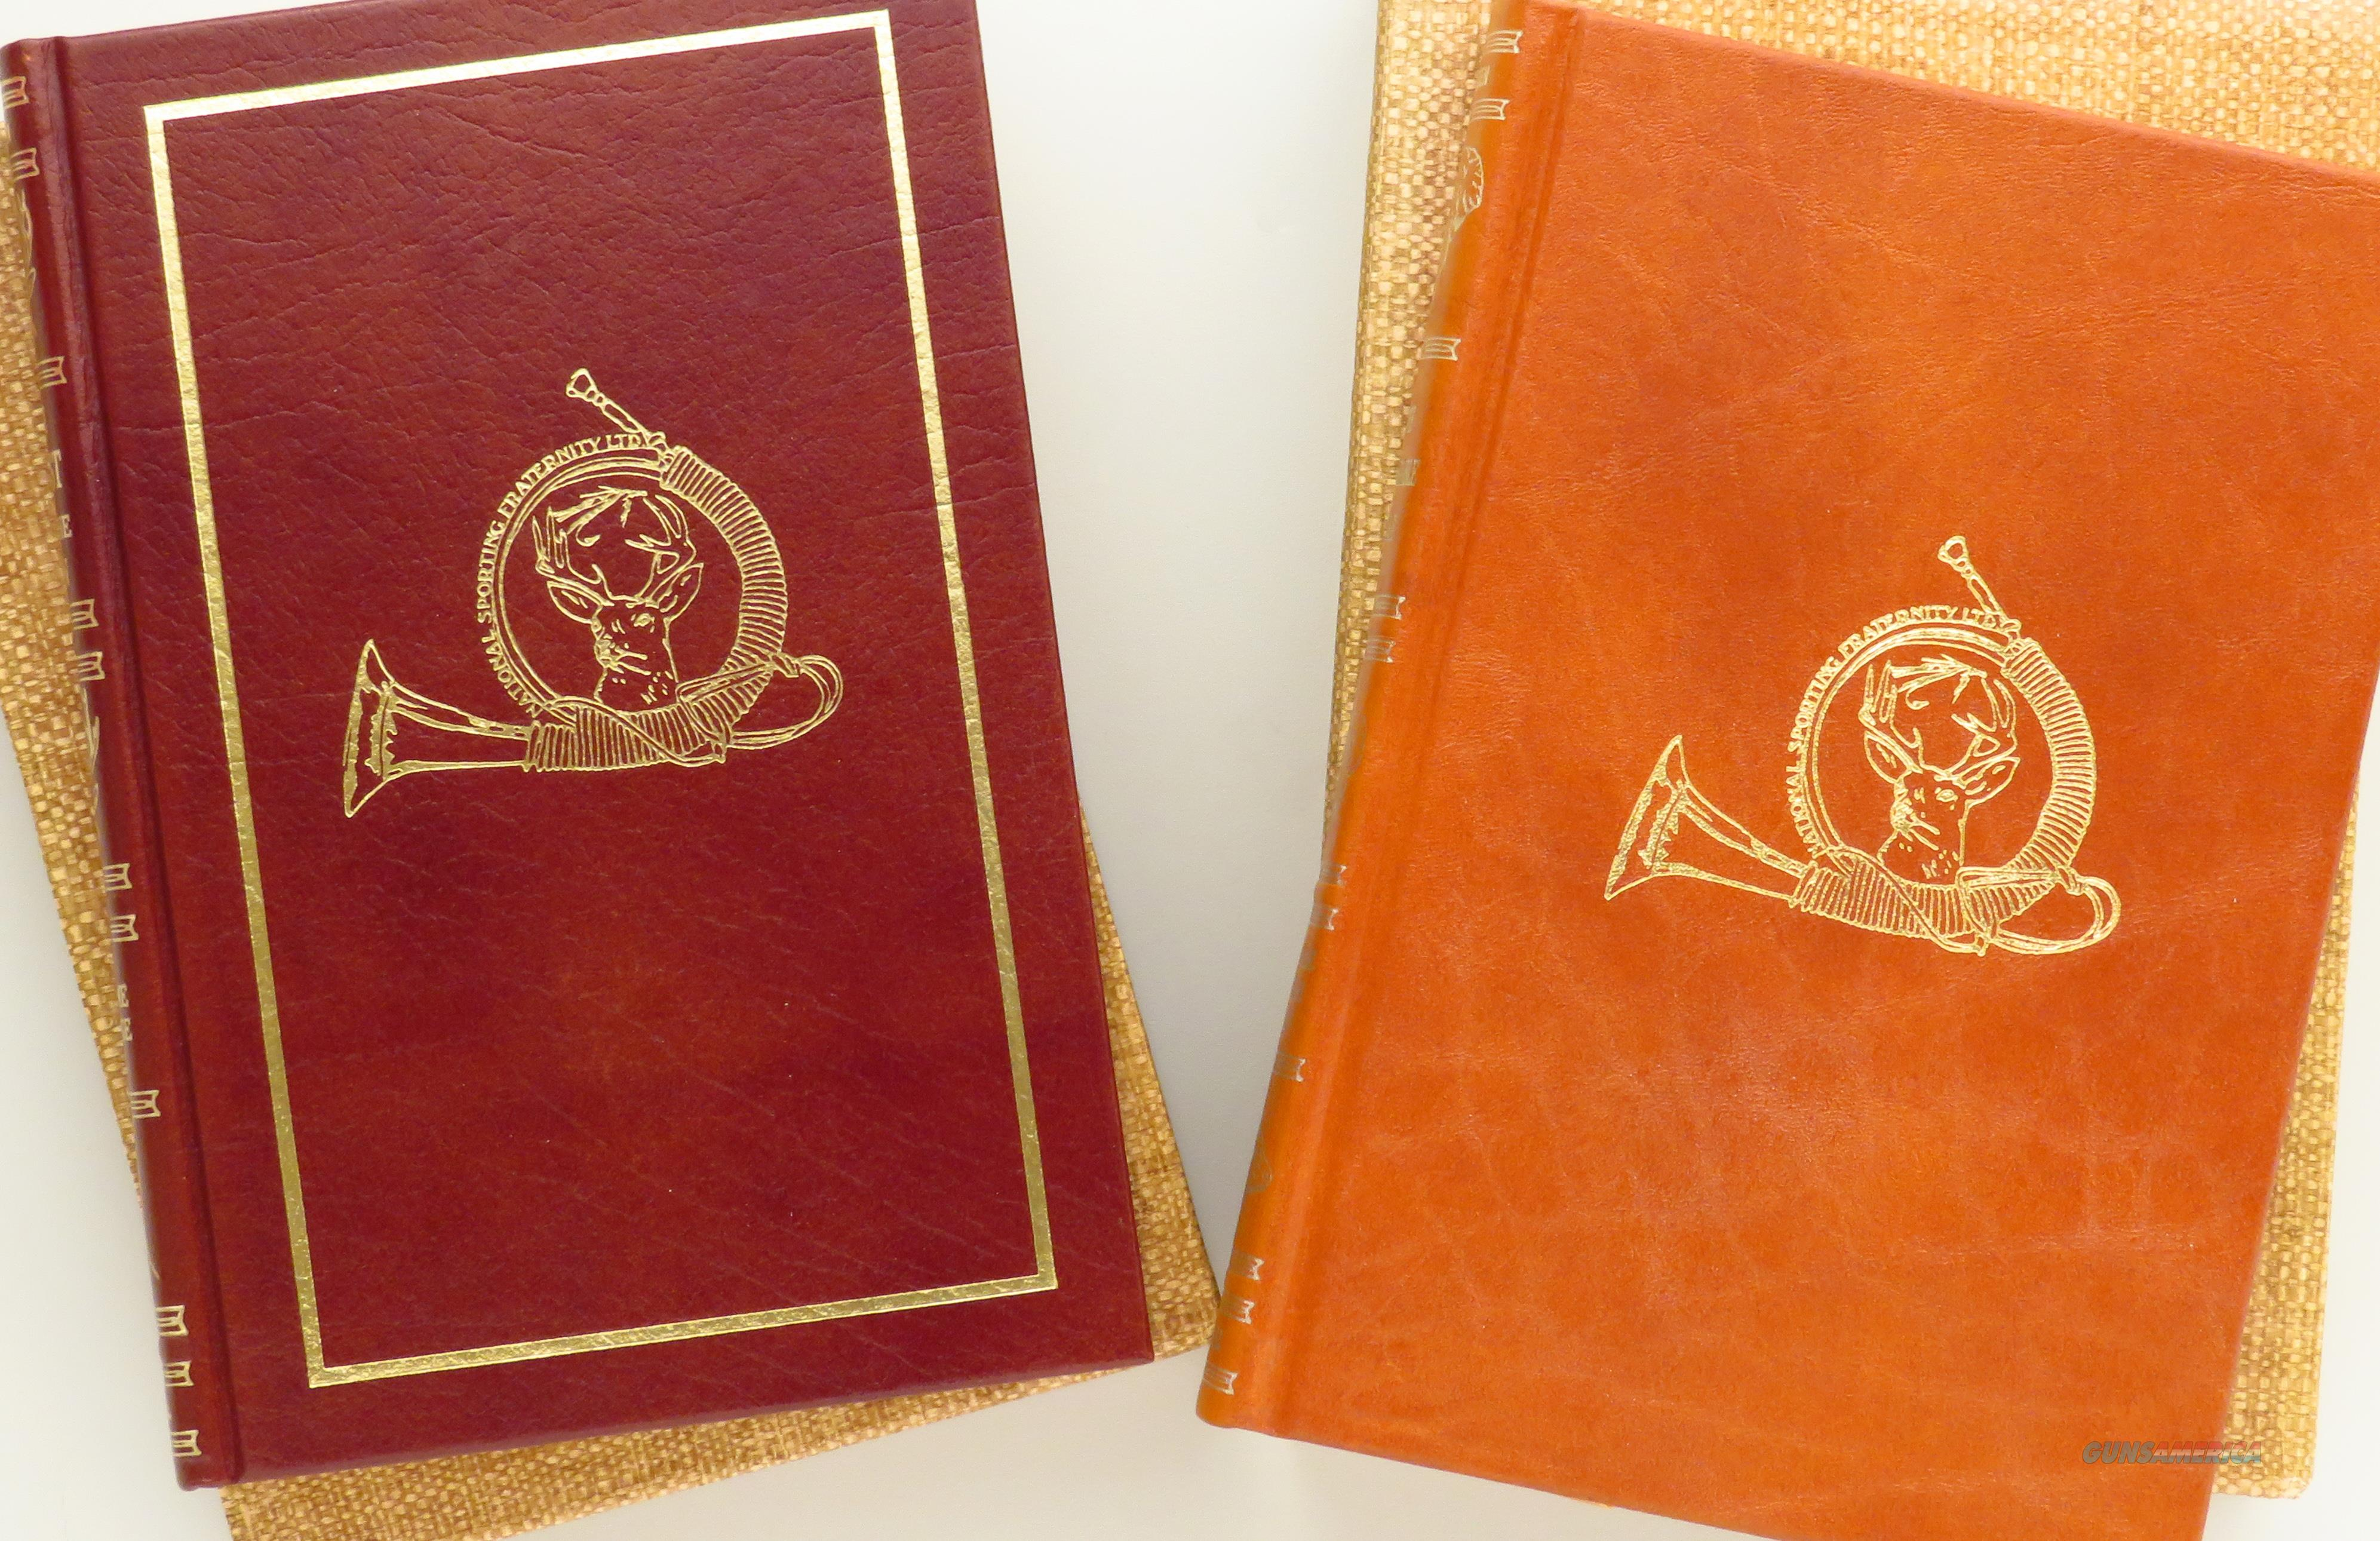 John Batten pair, Formidable Game, Forest and the Plain, matching edition numbers, new condition  Non-Guns > Books & Magazines